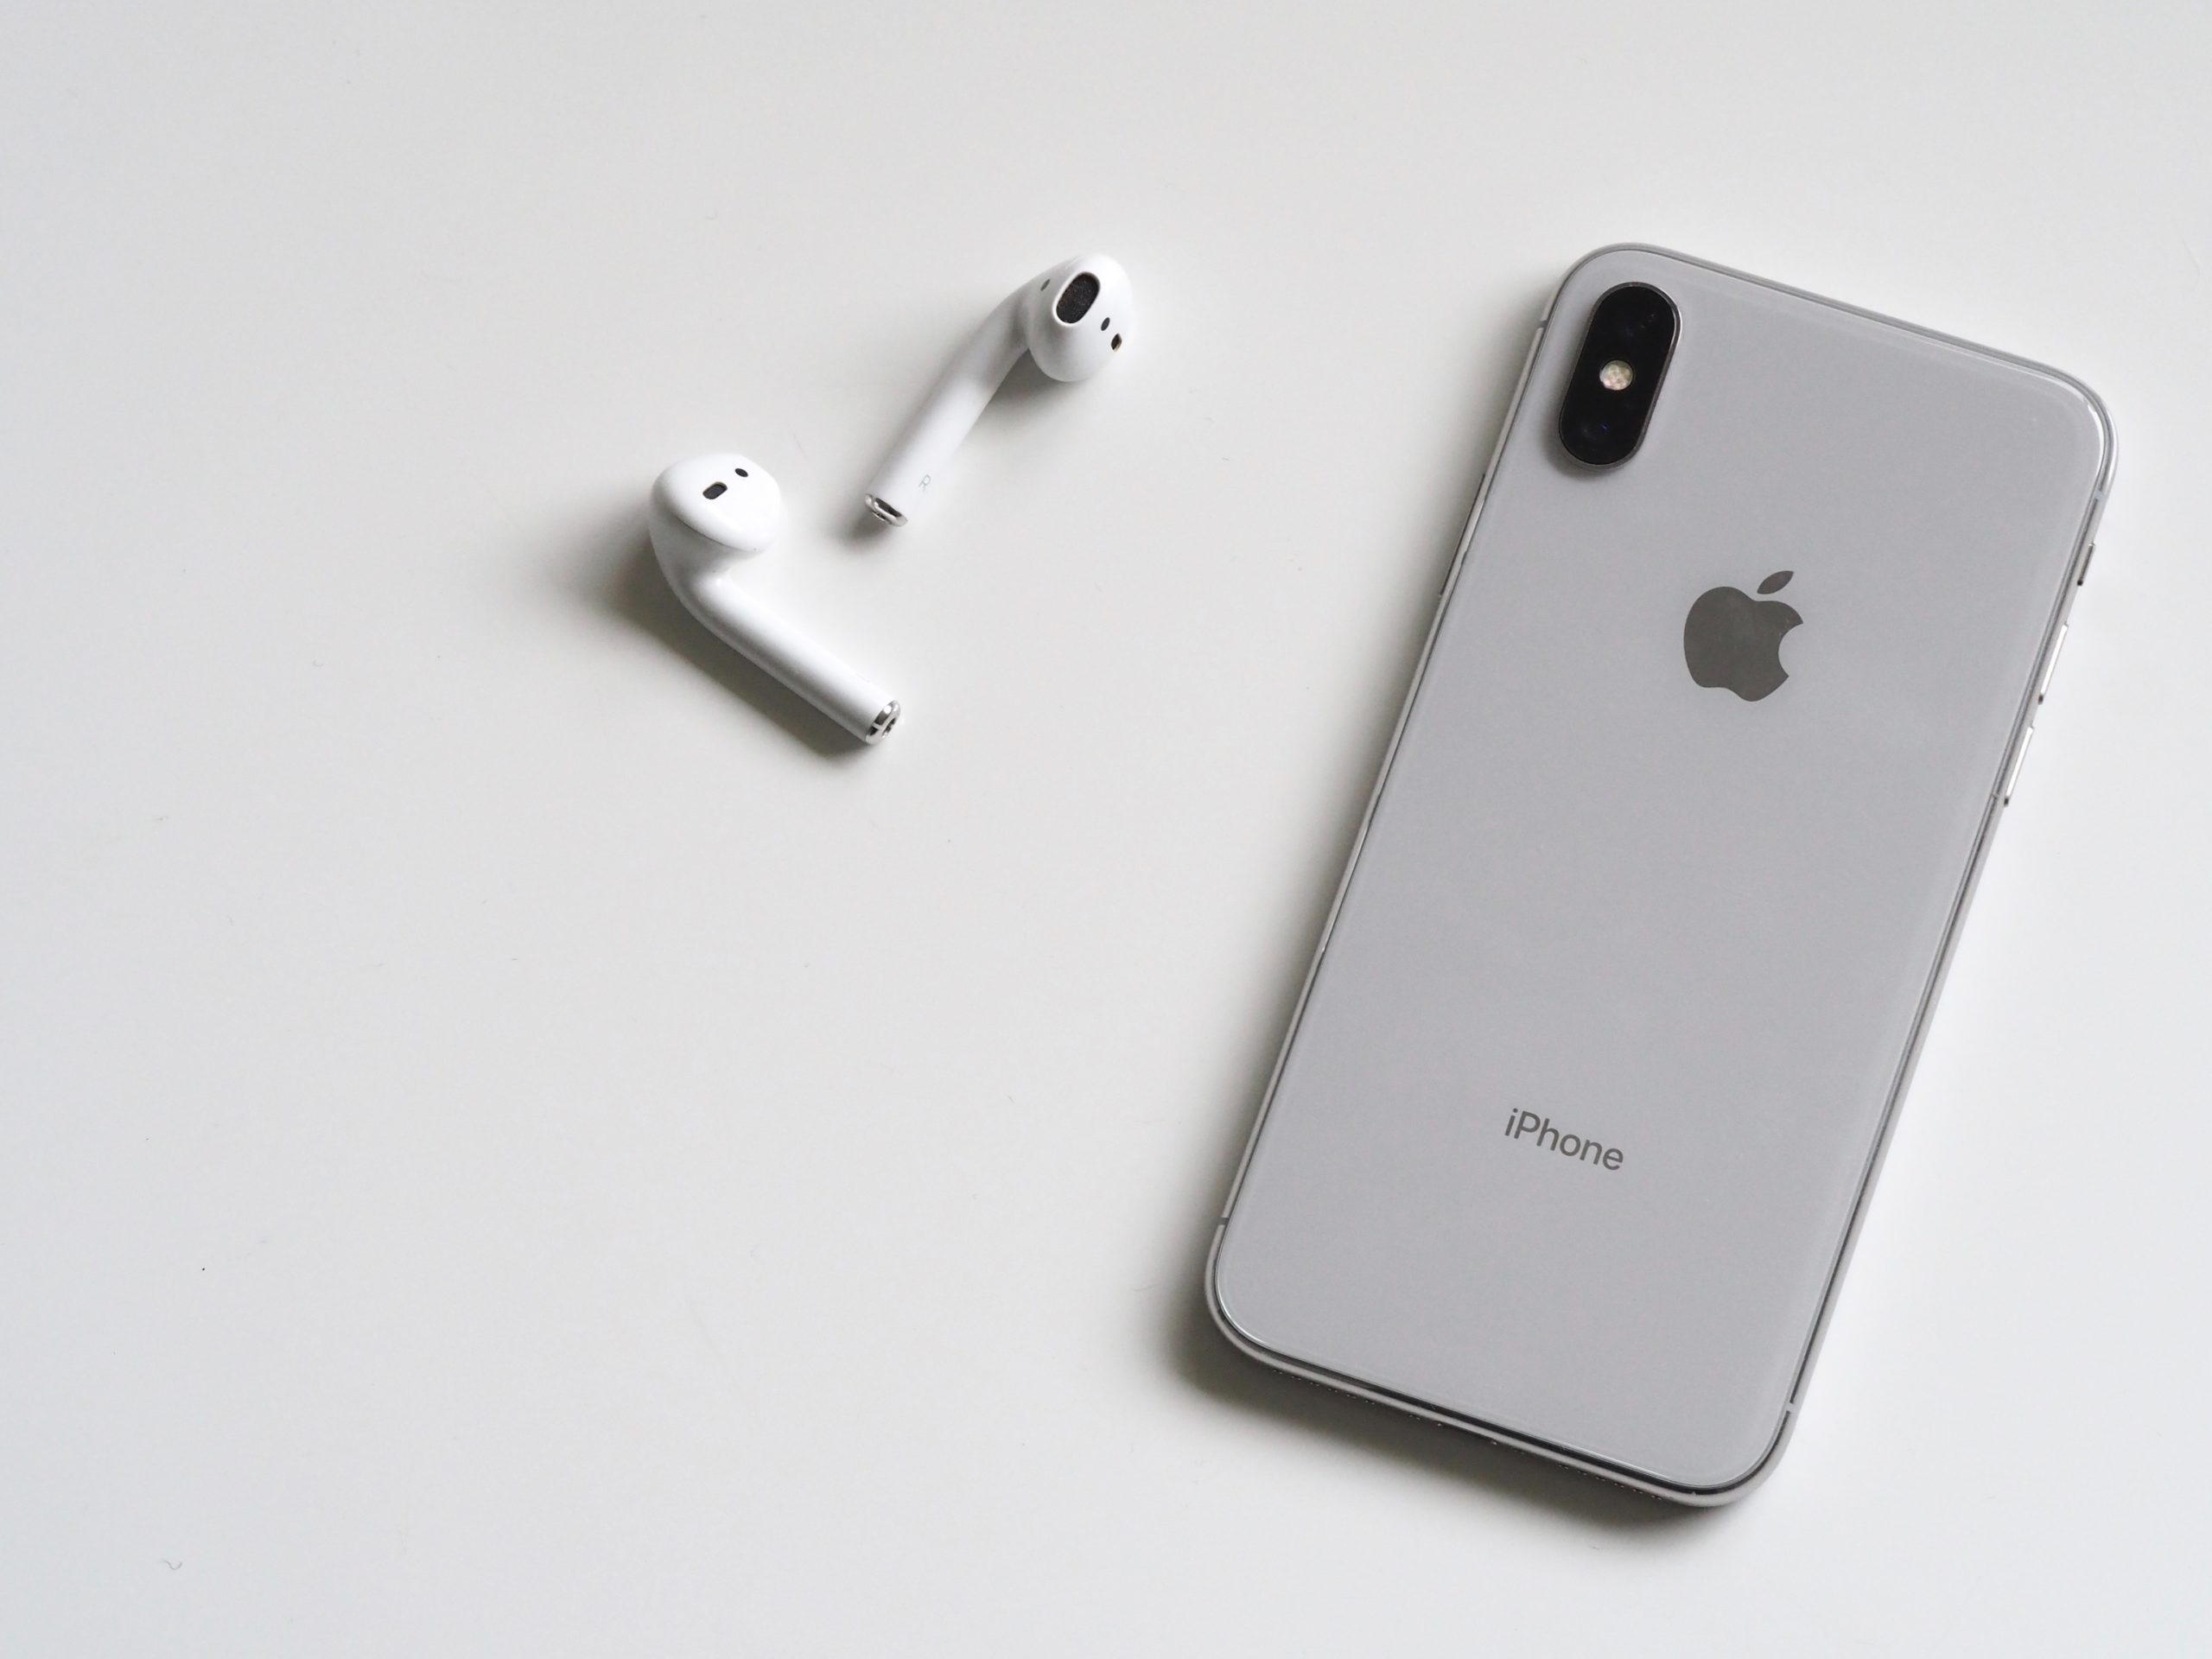 apple music keeps saying content not authorised https://www.pexels.com/photo/silver-iphone-x-with-airpods-788946/